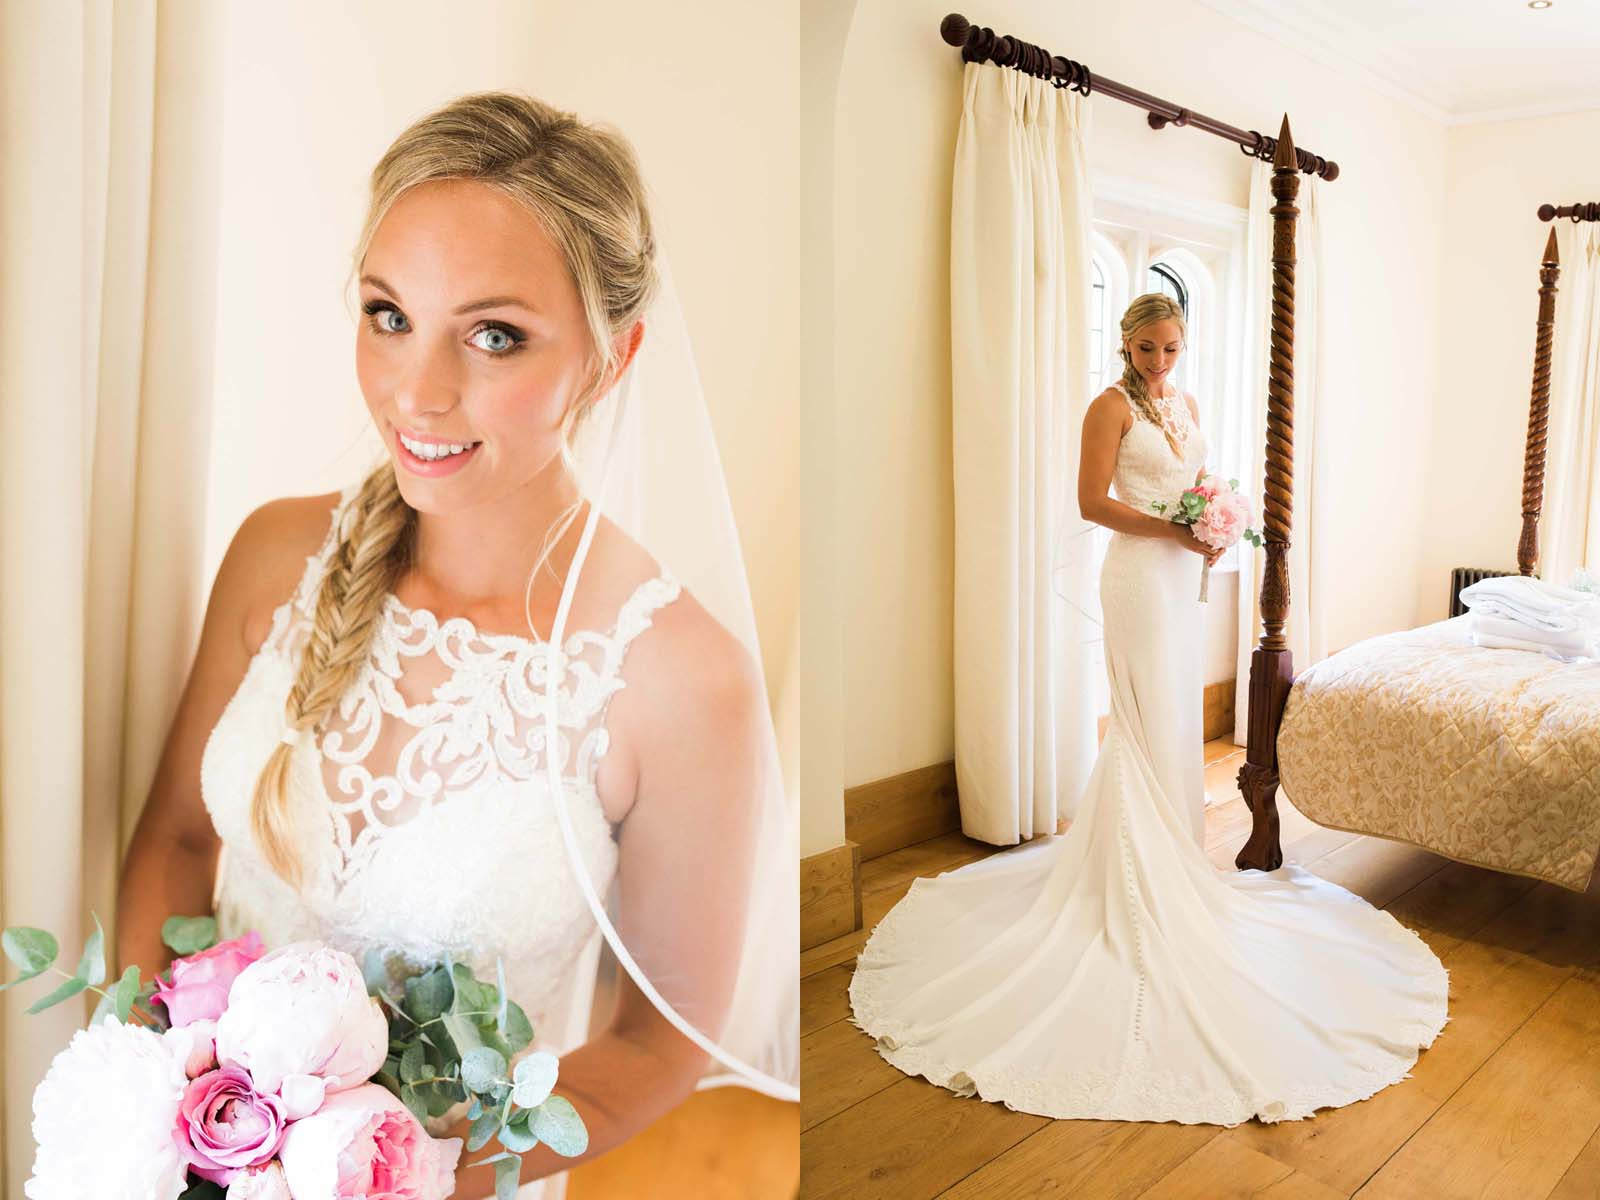 Notley Abbey wedding in Buckinghamshire full length photo of the bride